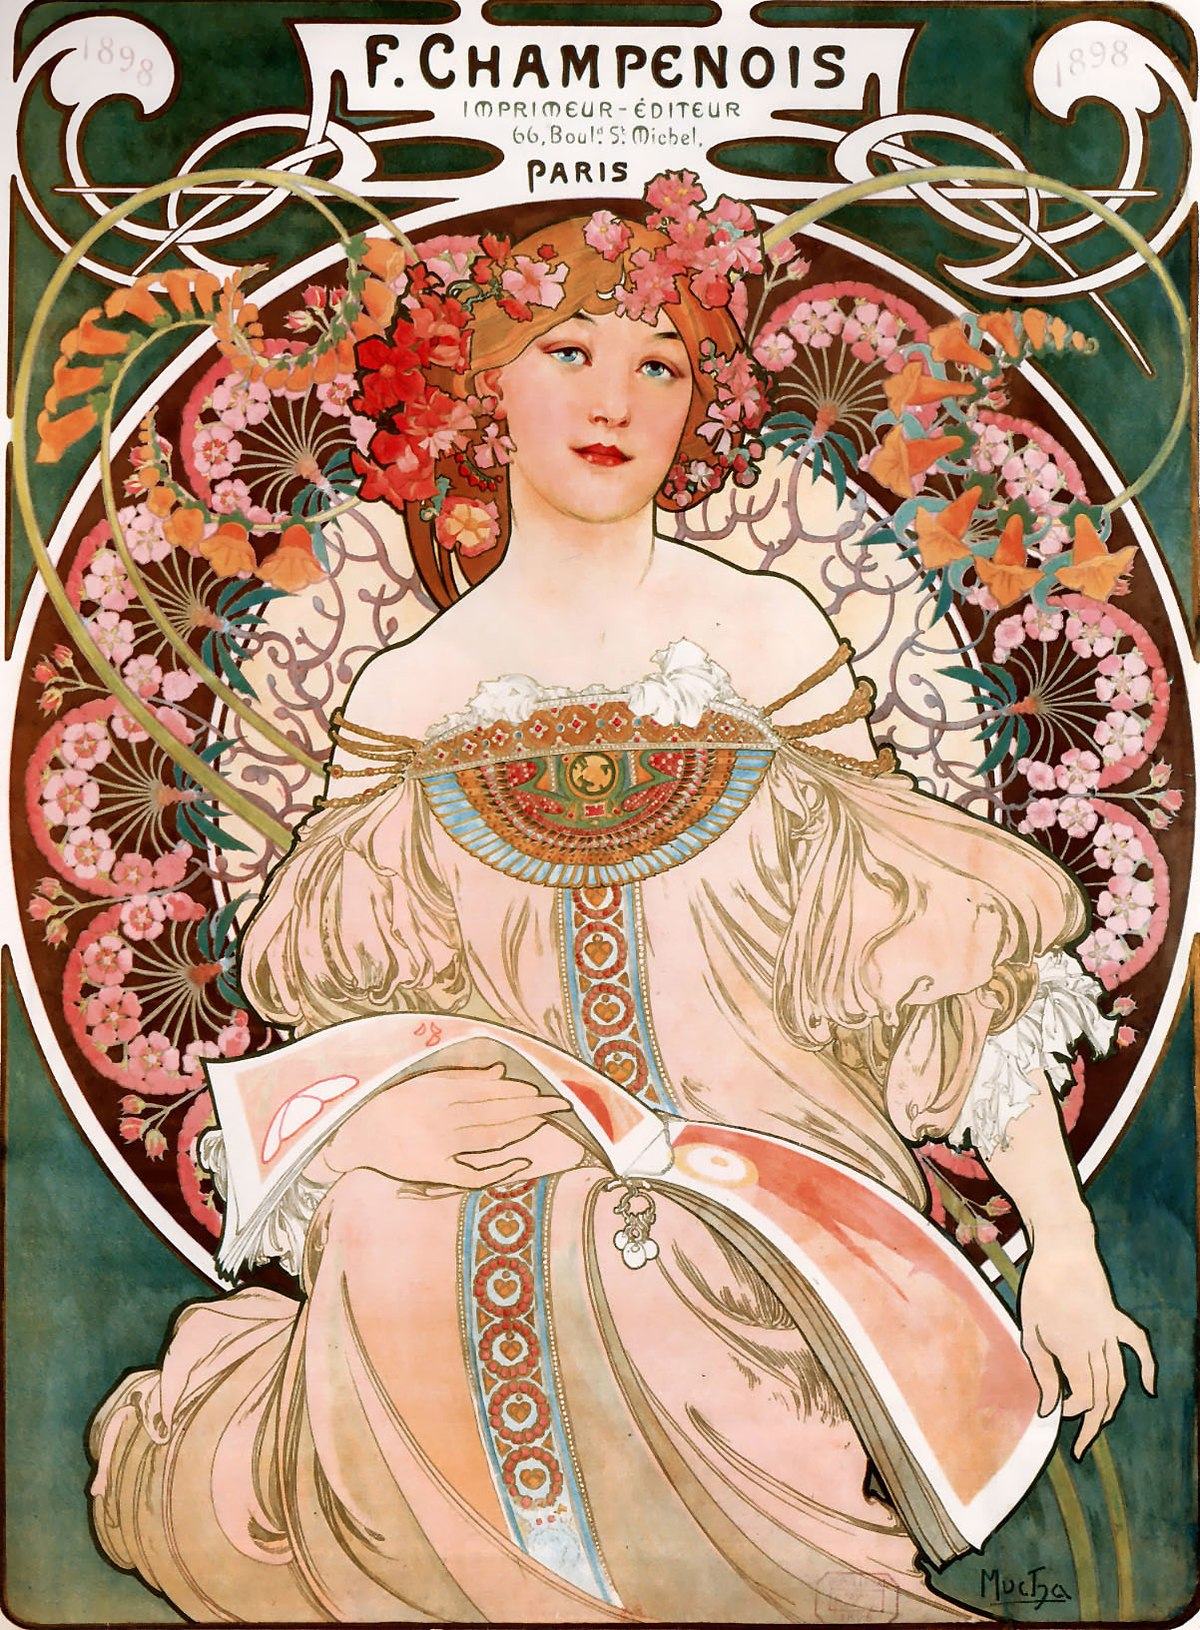 illustrational poster of a woman surrounded by a ring of flowers with an open book on her lap